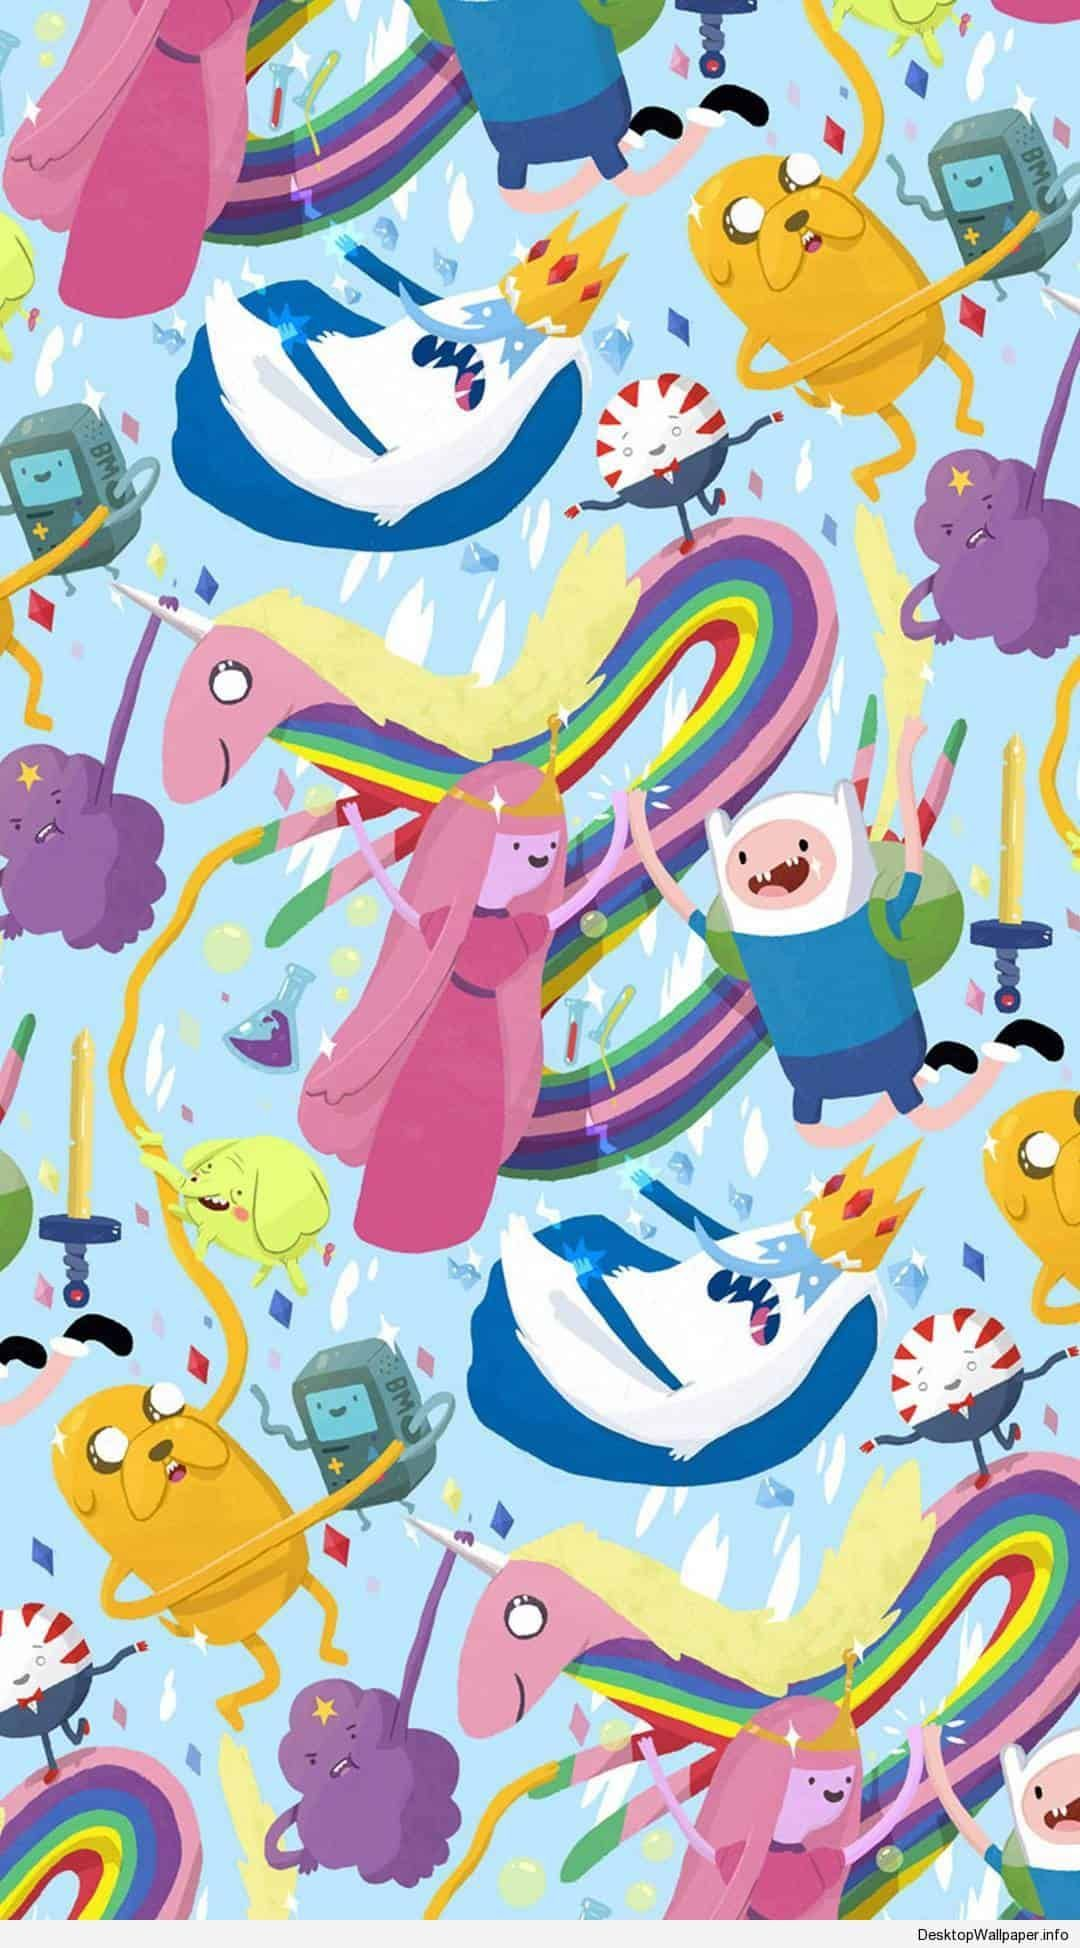 Adventure Time Wallpaper Tumblr Http Desktopwallpaper Info Adventure Tim Adventure Time Wallpaper Adventure Time Iphone Wallpaper Adventure Time Characters